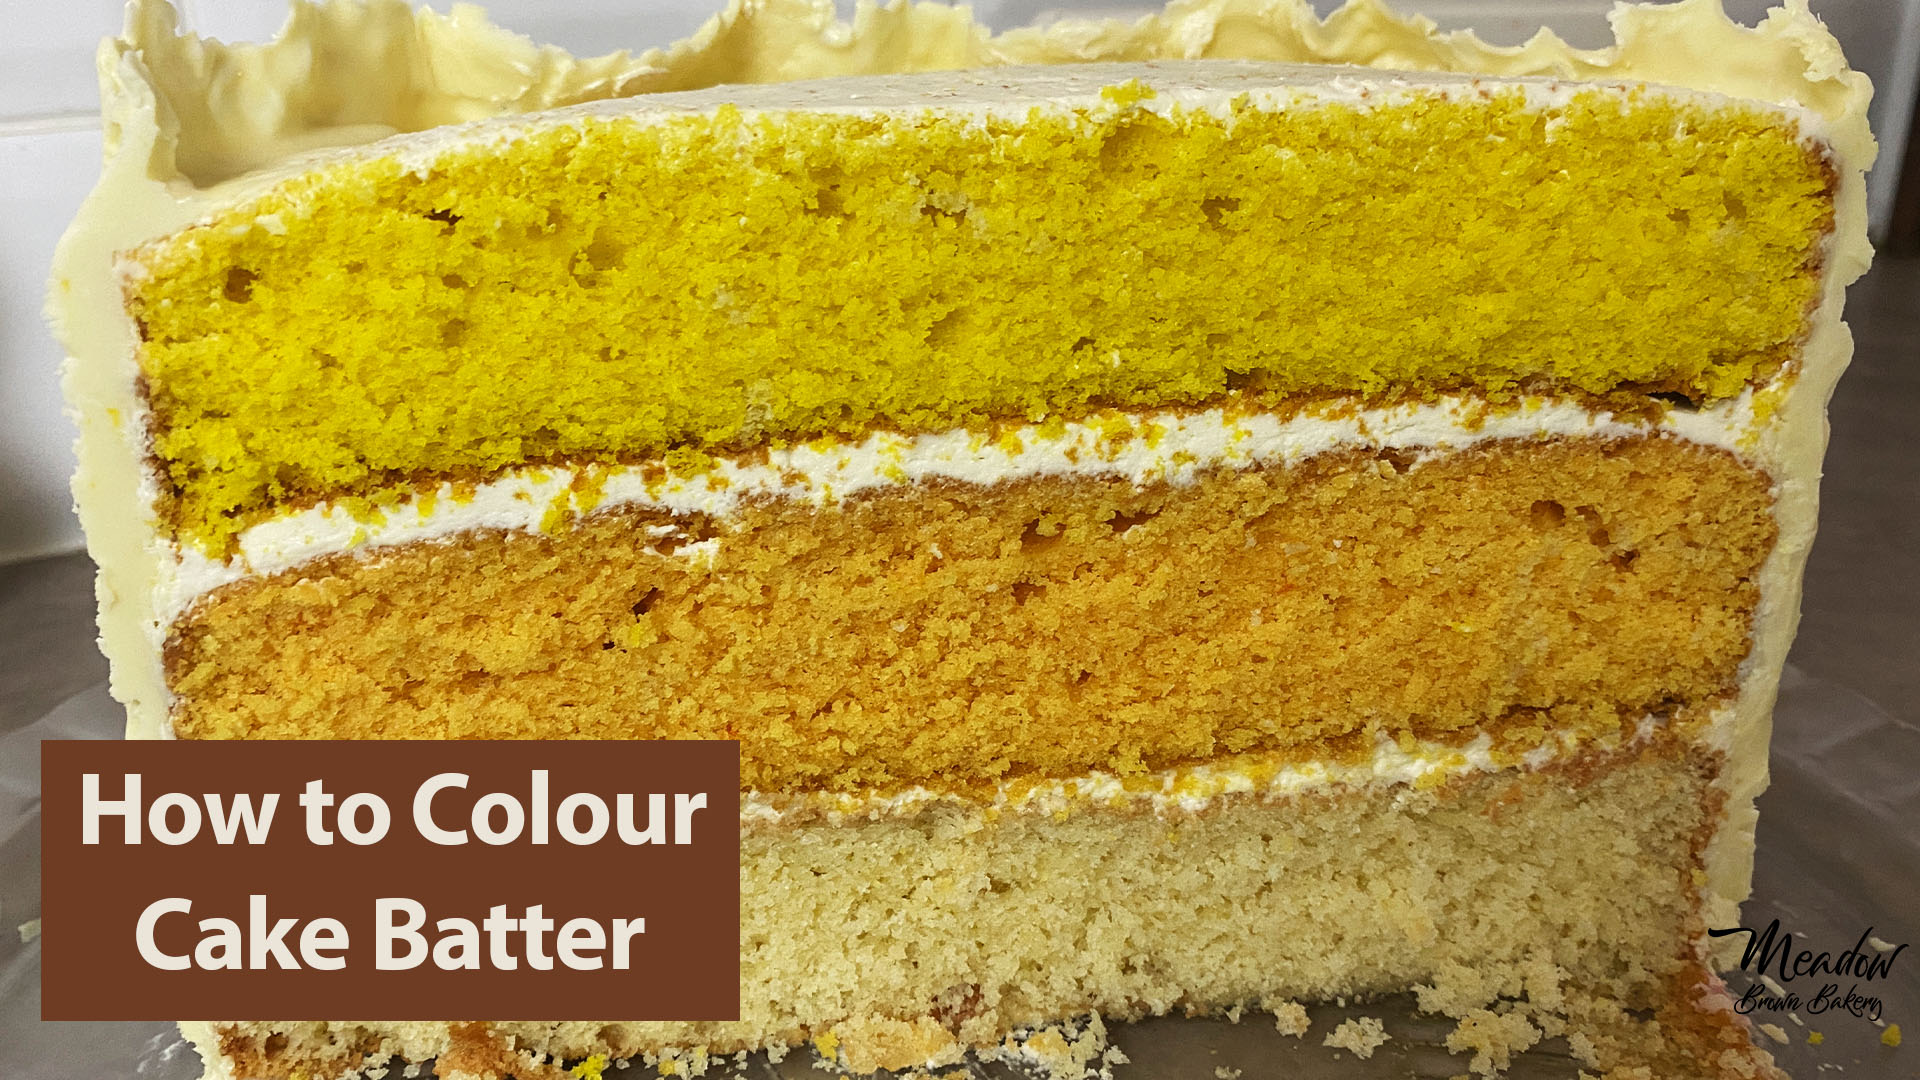 How to colour cake batter